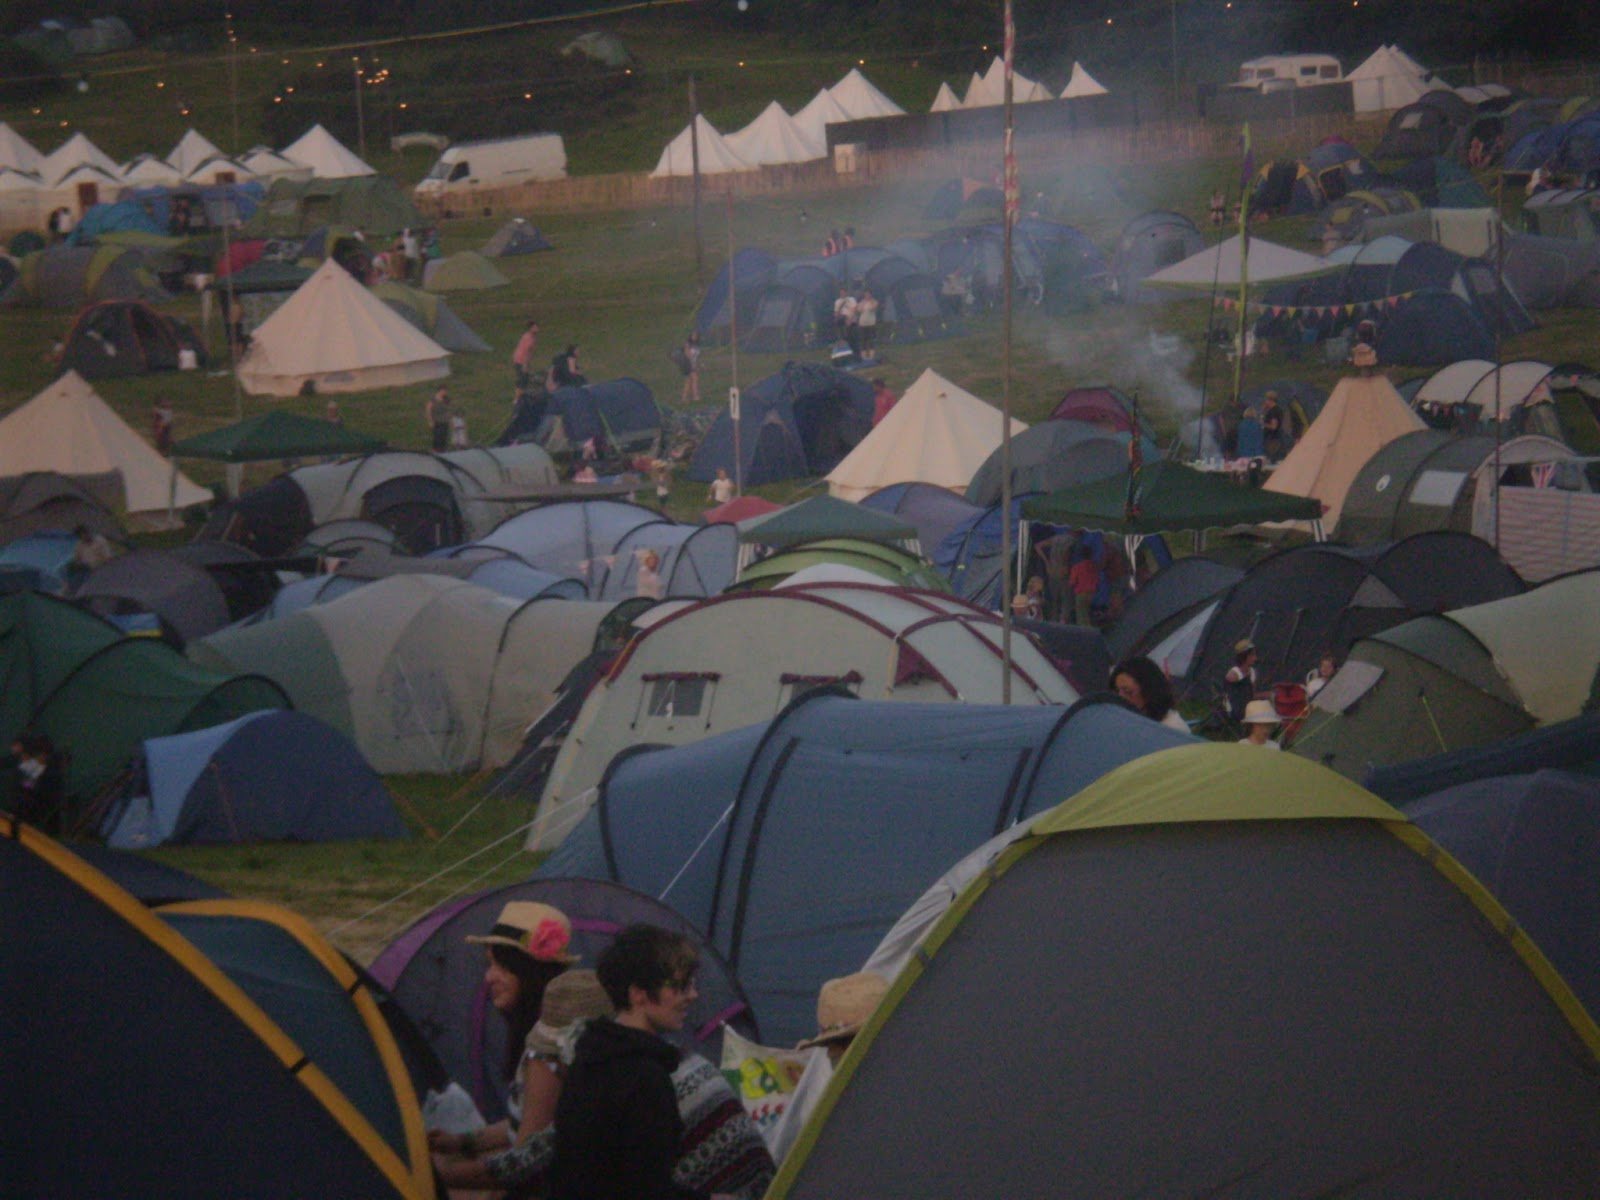 crowded festival tents at camp bestival